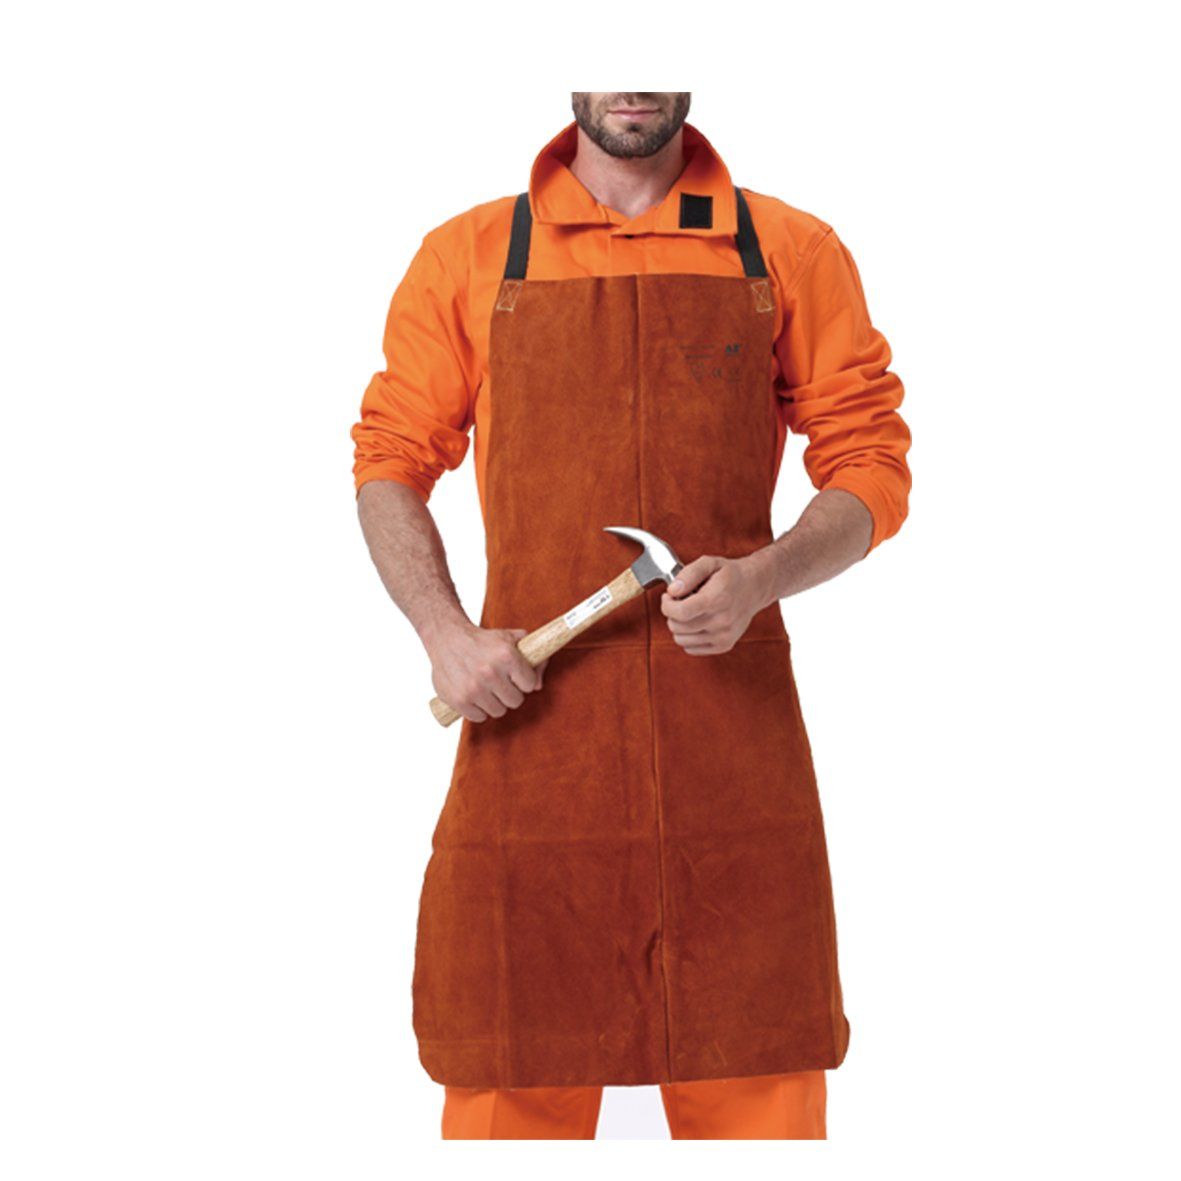 AllyProtect Length 42'' Heat/Flame Resistant Leather Welding Bib Apron NO Pocket for Men/Women for Woodwork/Home Improvement/Heavy Duty Work £¨ Coffee Color£